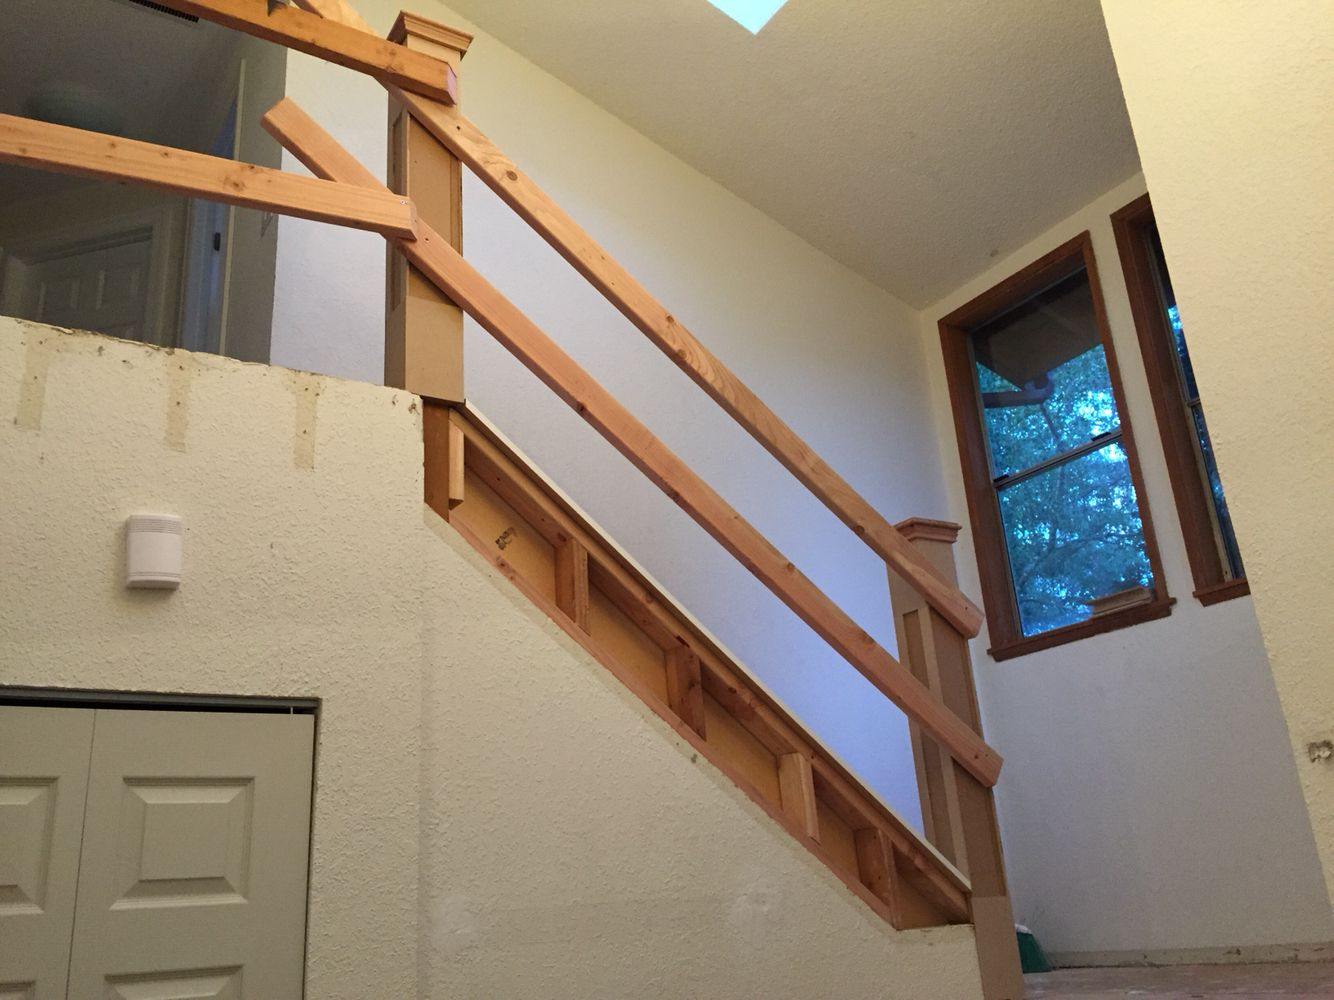 Newel Posts Made Out Of Mdf With 4X4 Core Temp 2X4 Railing For | 2X4 Railing For Stairs | Solid Wood | 6 Foot | Stairway | Temporary | Natural Hardwood